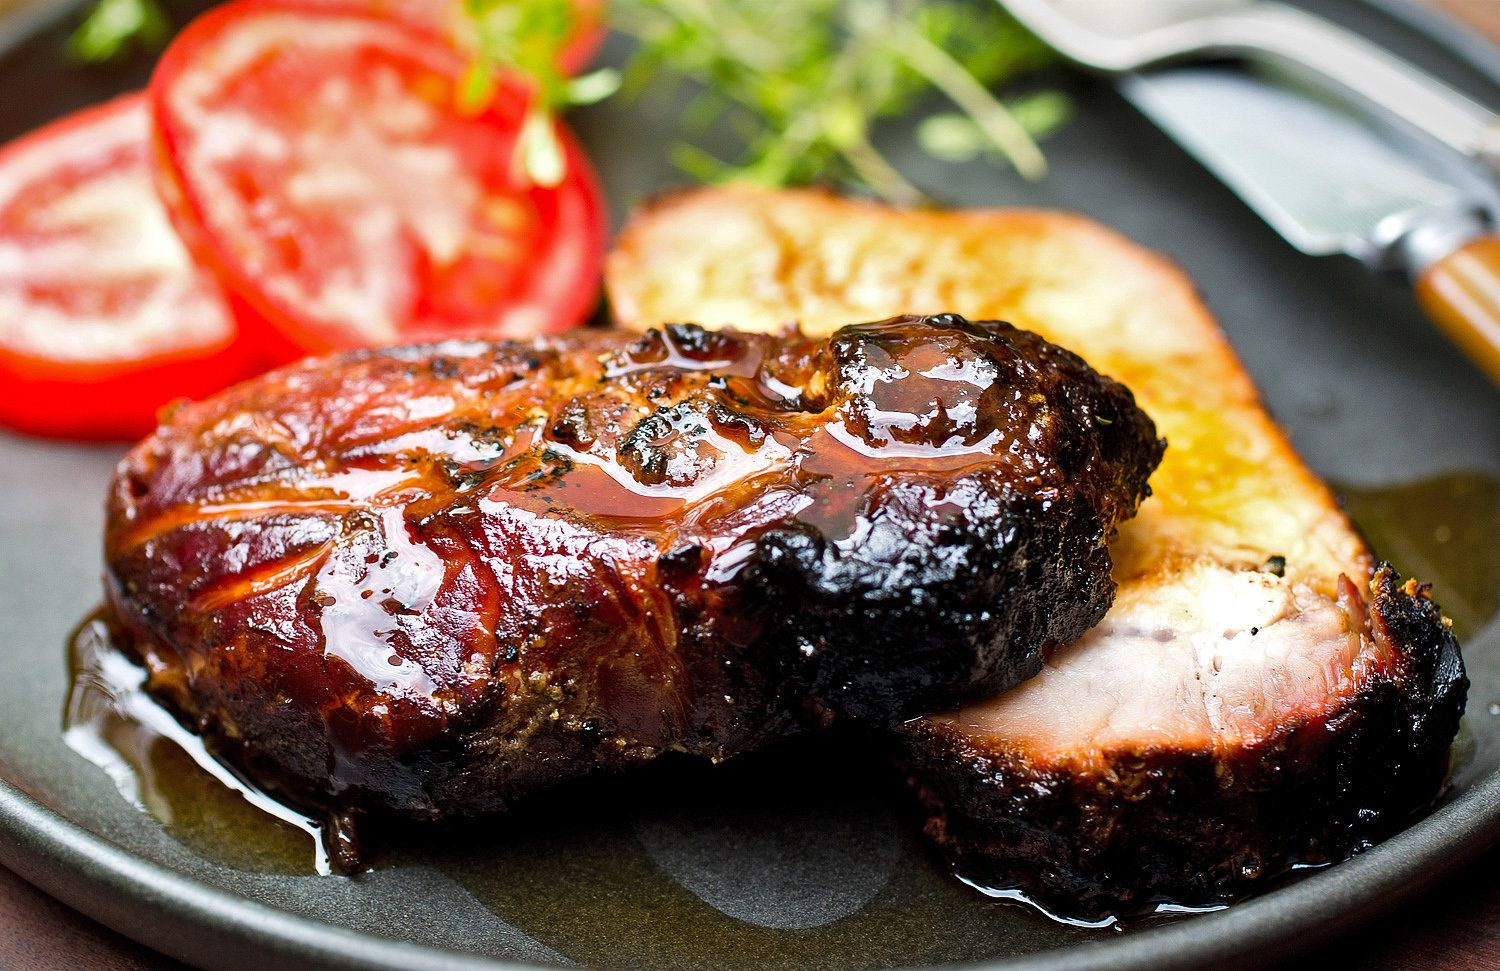 Recipe: Grilled Pork Loin With Wine-Salt Rub by Melissa Clark || Photo: Andrew Scrivani for The New York Times